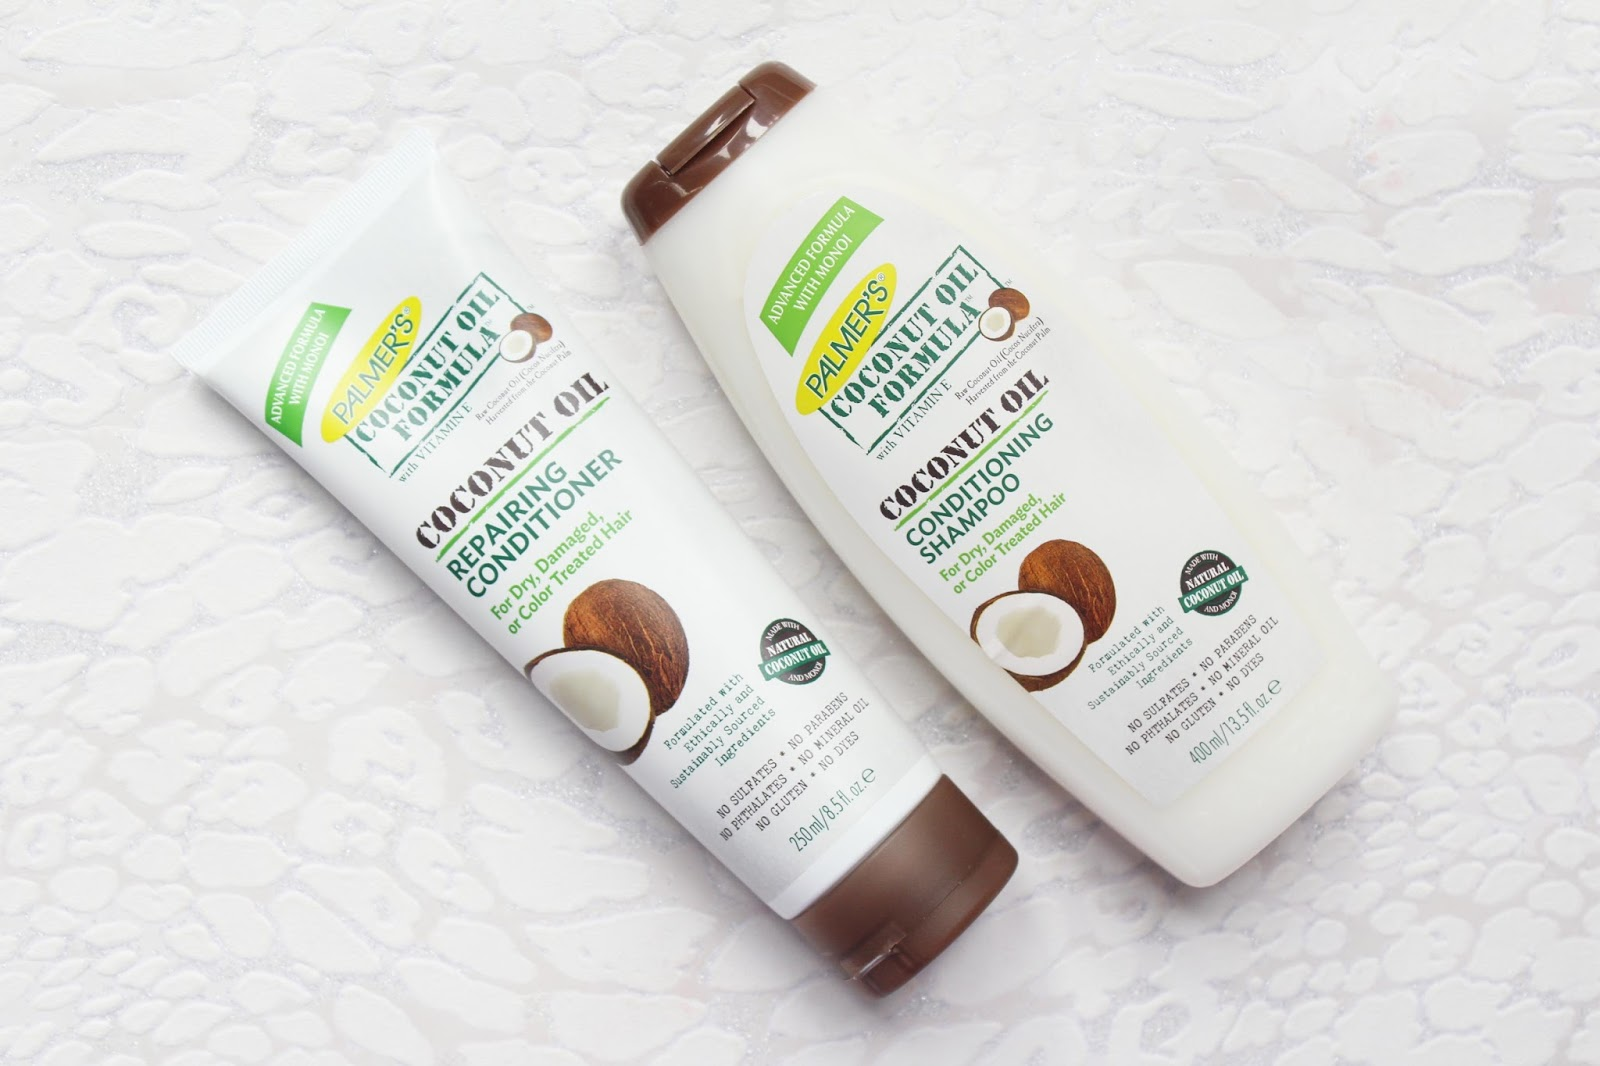 Palmers Coconut Oil Hair Care